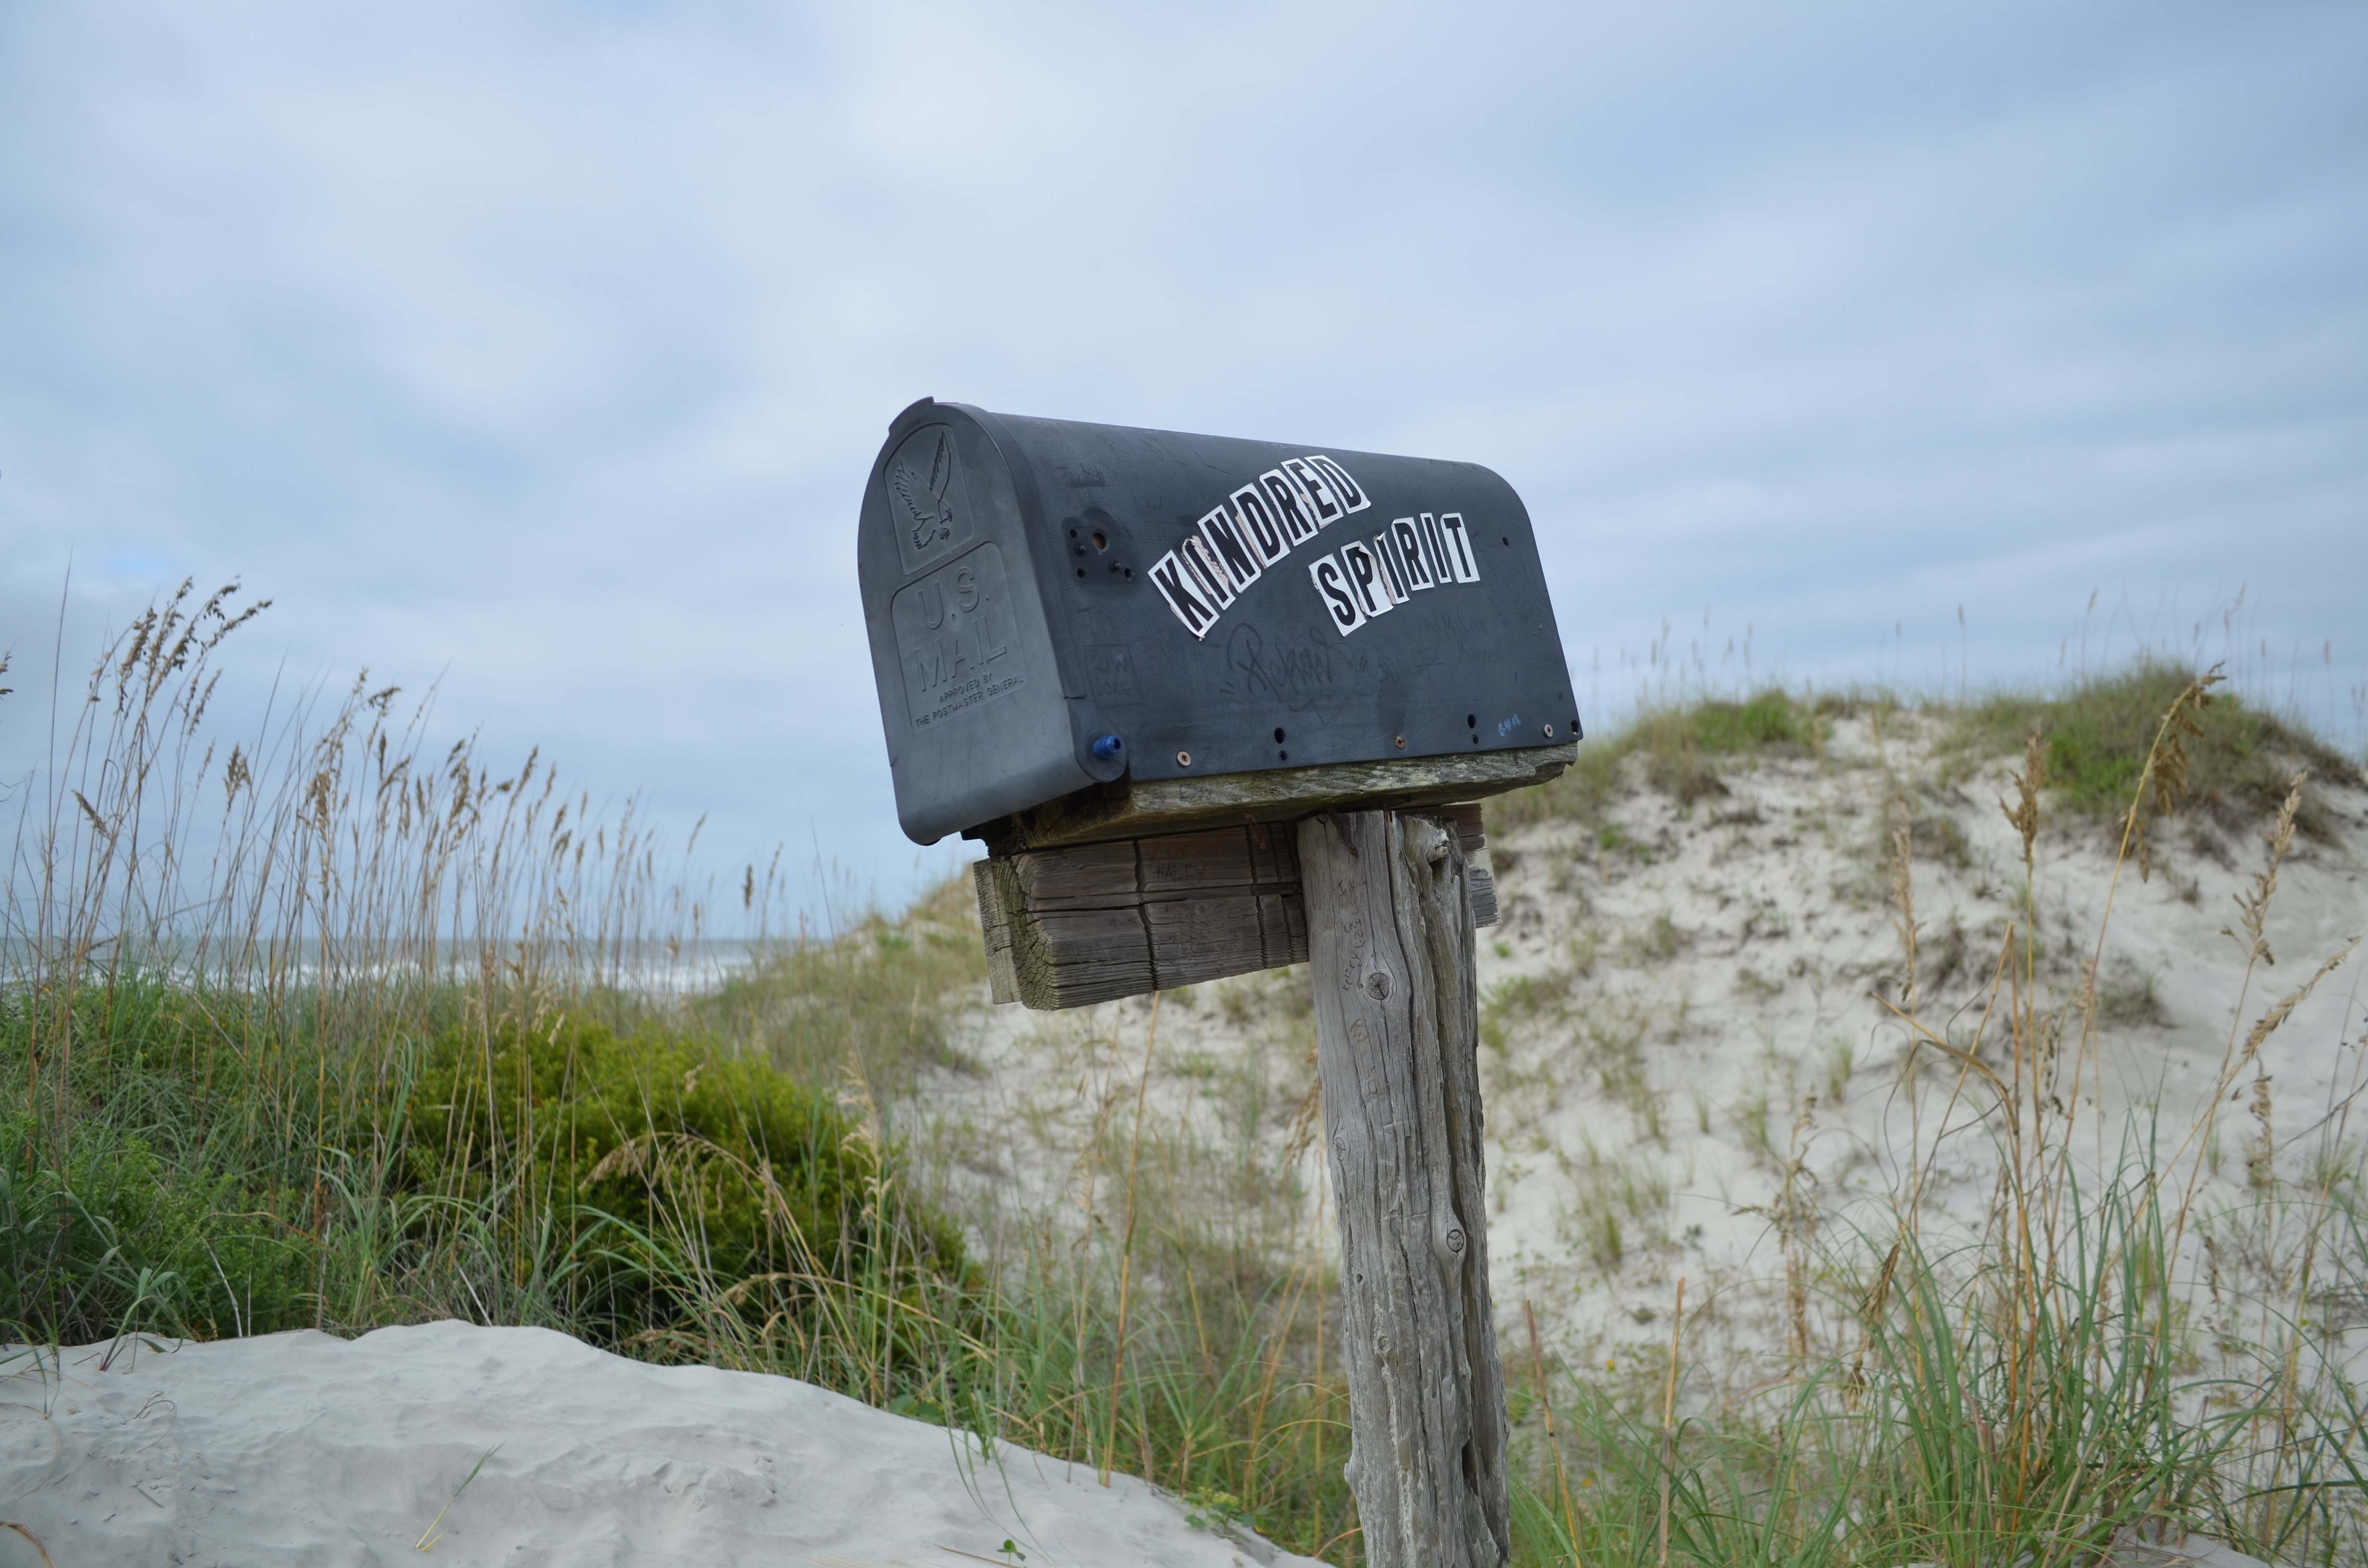 shallow focus photography of mailbox surrounded by grass